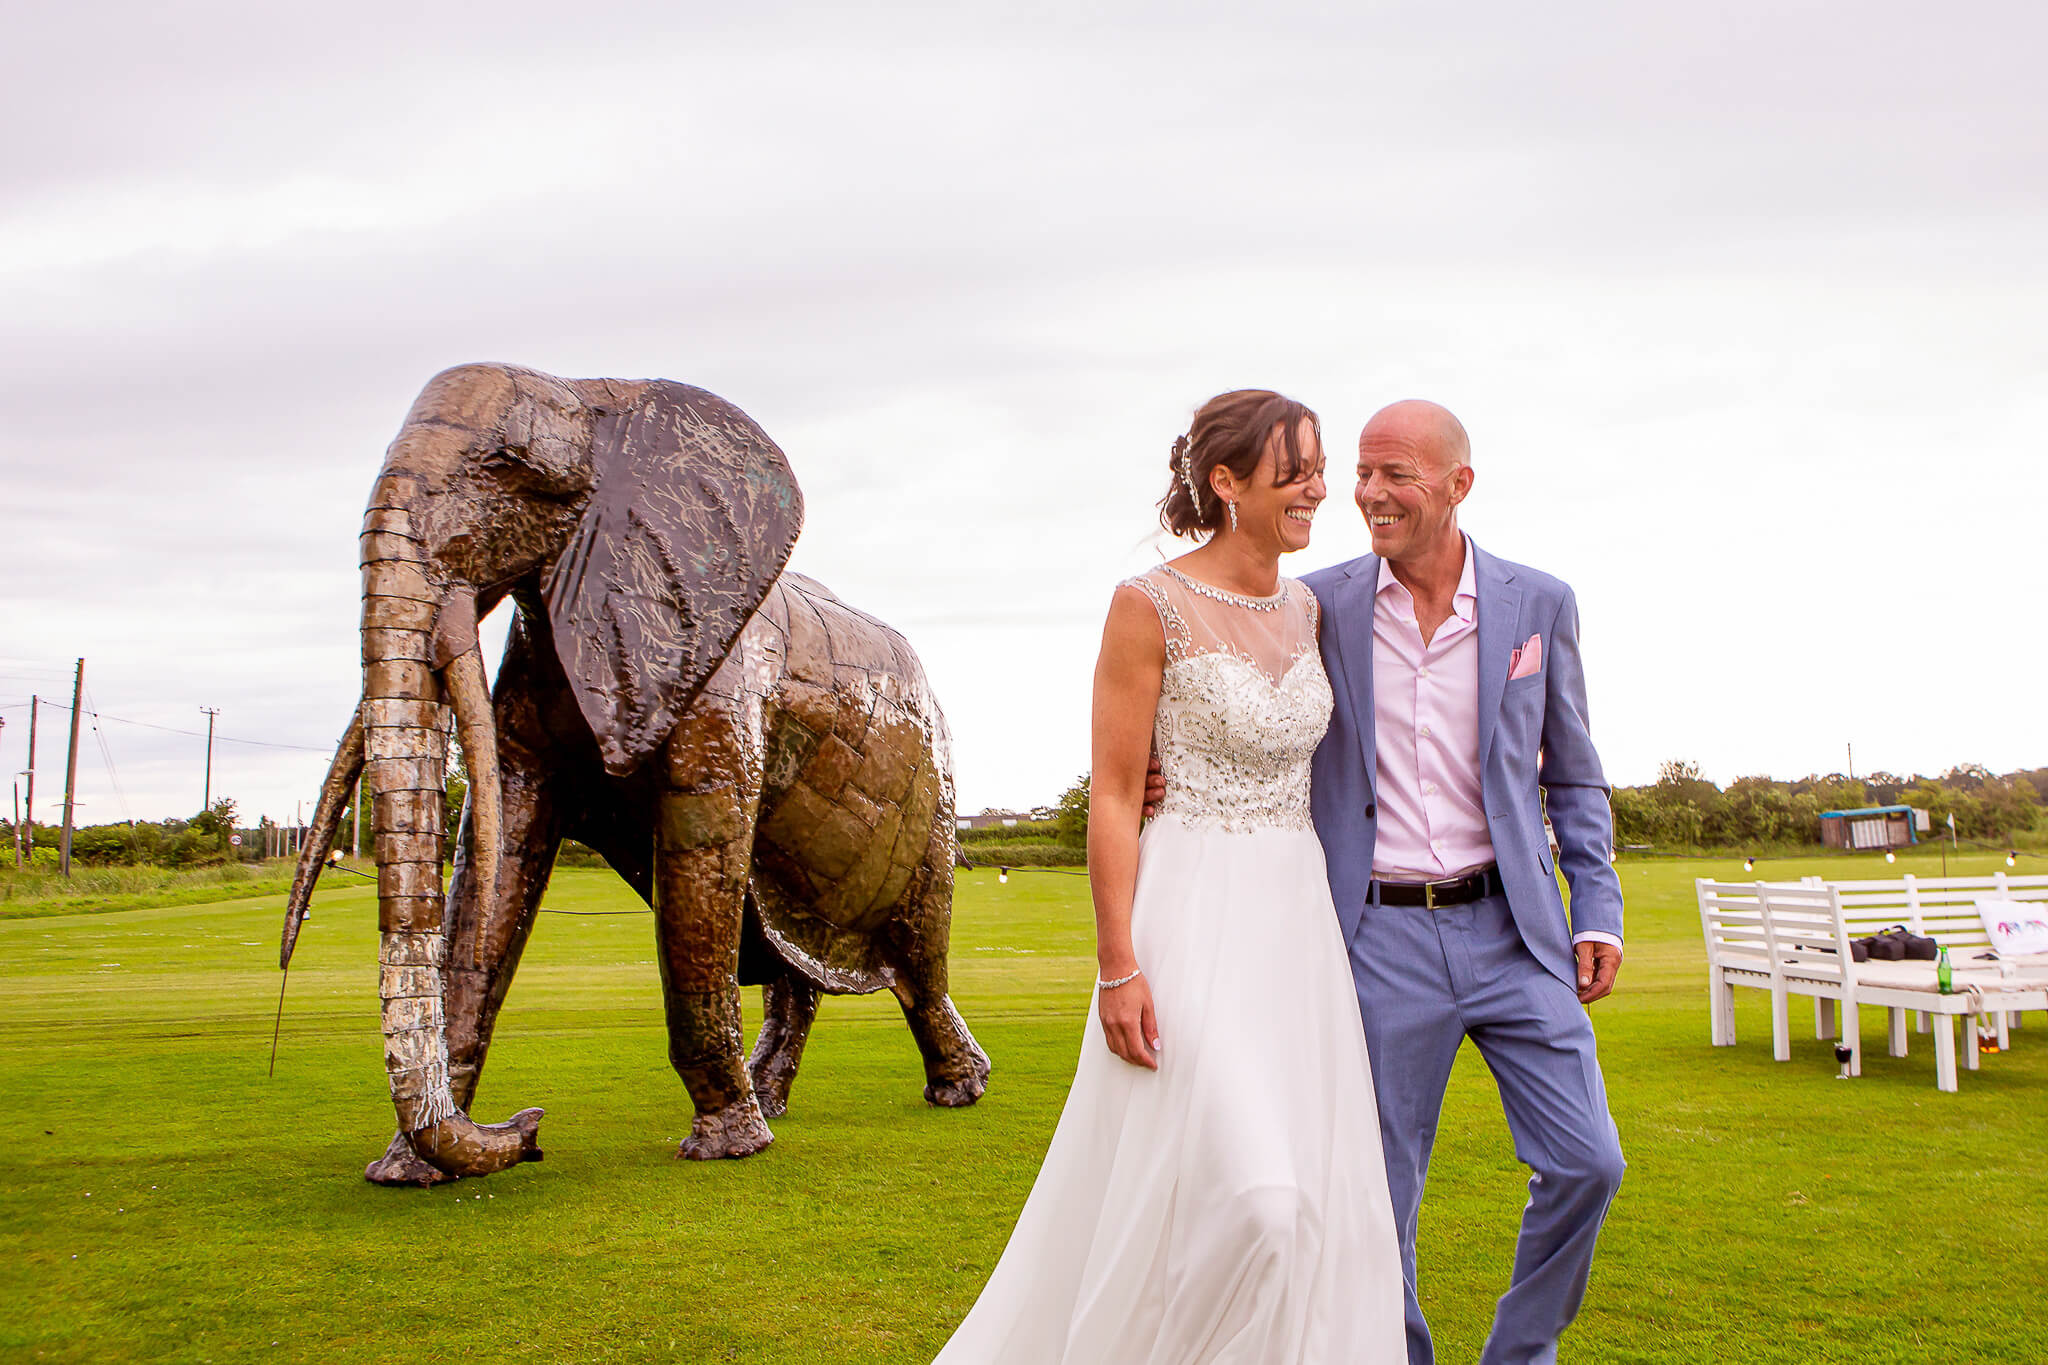 best-wedding-photographers-uk-europe-stanbury-photography-097